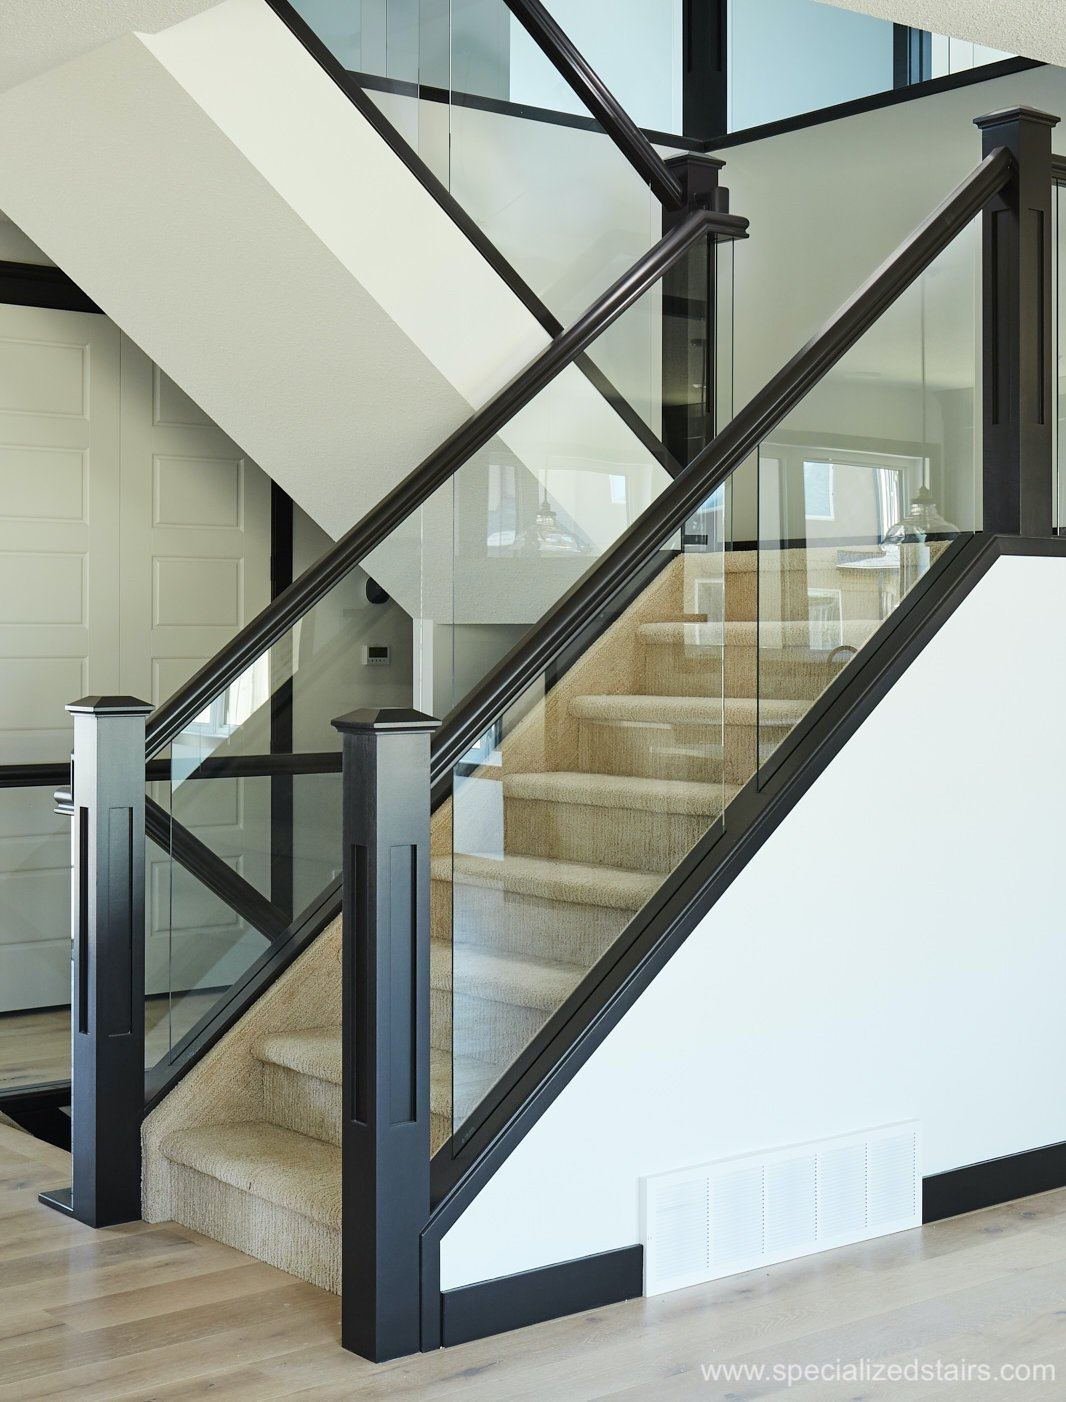 Dadoed Glass Railing Specialized Stair Rail | Steel Railing With Glass For Stairs